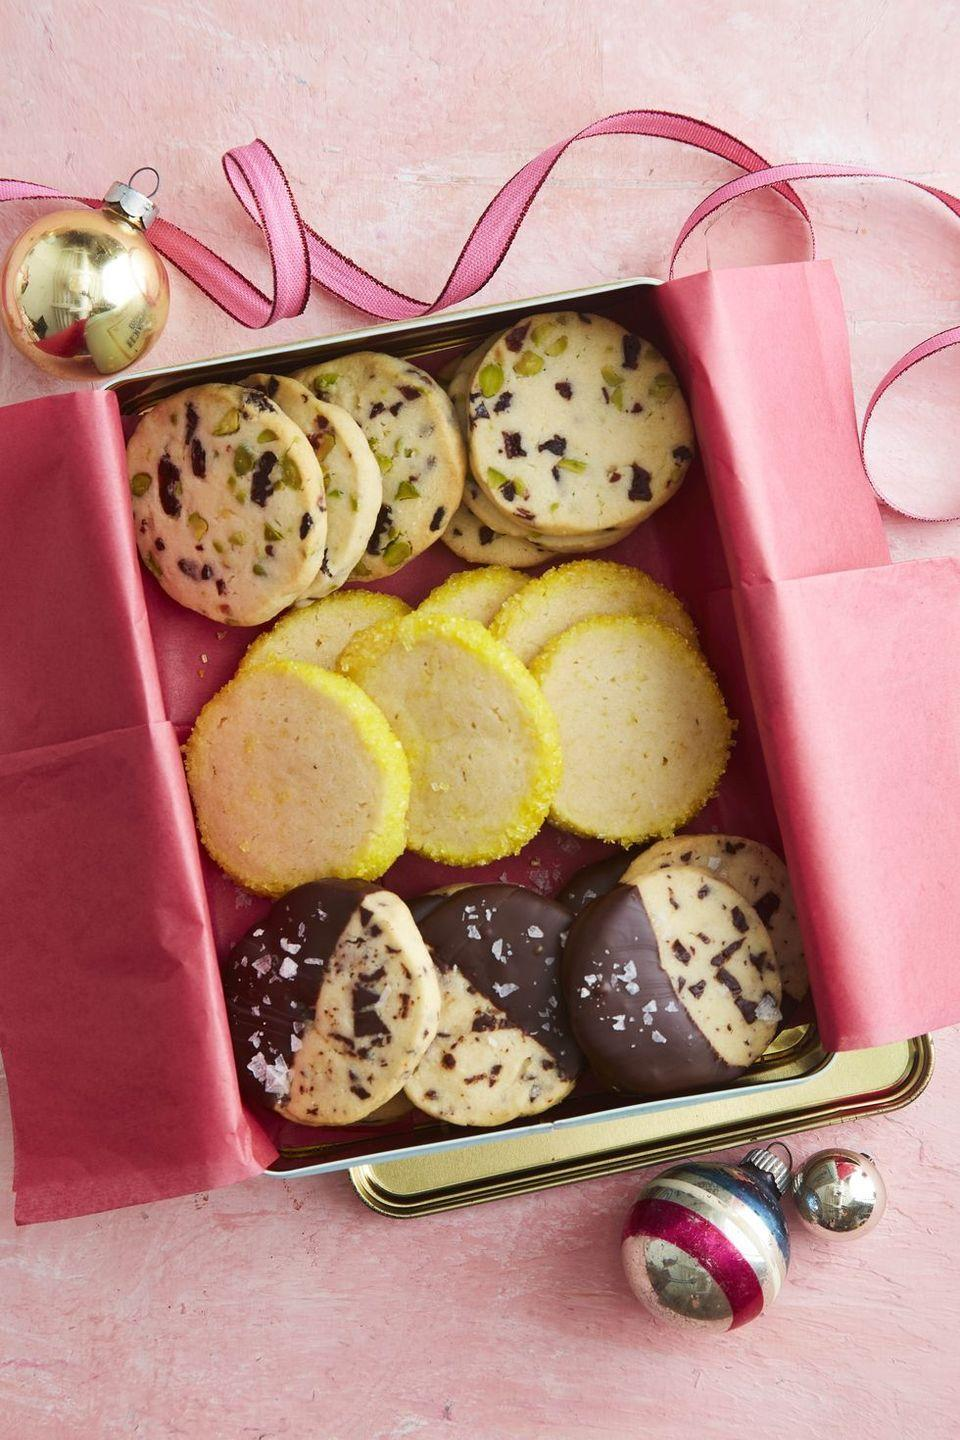 """<p>Choose one of the three flavors (chocolate sea salt, fruit-and-nut, and lemon) ... or just make all of them!</p><p><em><a href=""""https://www.countryliving.com/food-drinks/a34330858/slice-and-bake-shortbread-cookies/"""" rel=""""nofollow noopener"""" target=""""_blank"""" data-ylk=""""slk:Get the recipe from Country Living »"""" class=""""link rapid-noclick-resp"""">Get the recipe from Country Living »</a></em></p>"""